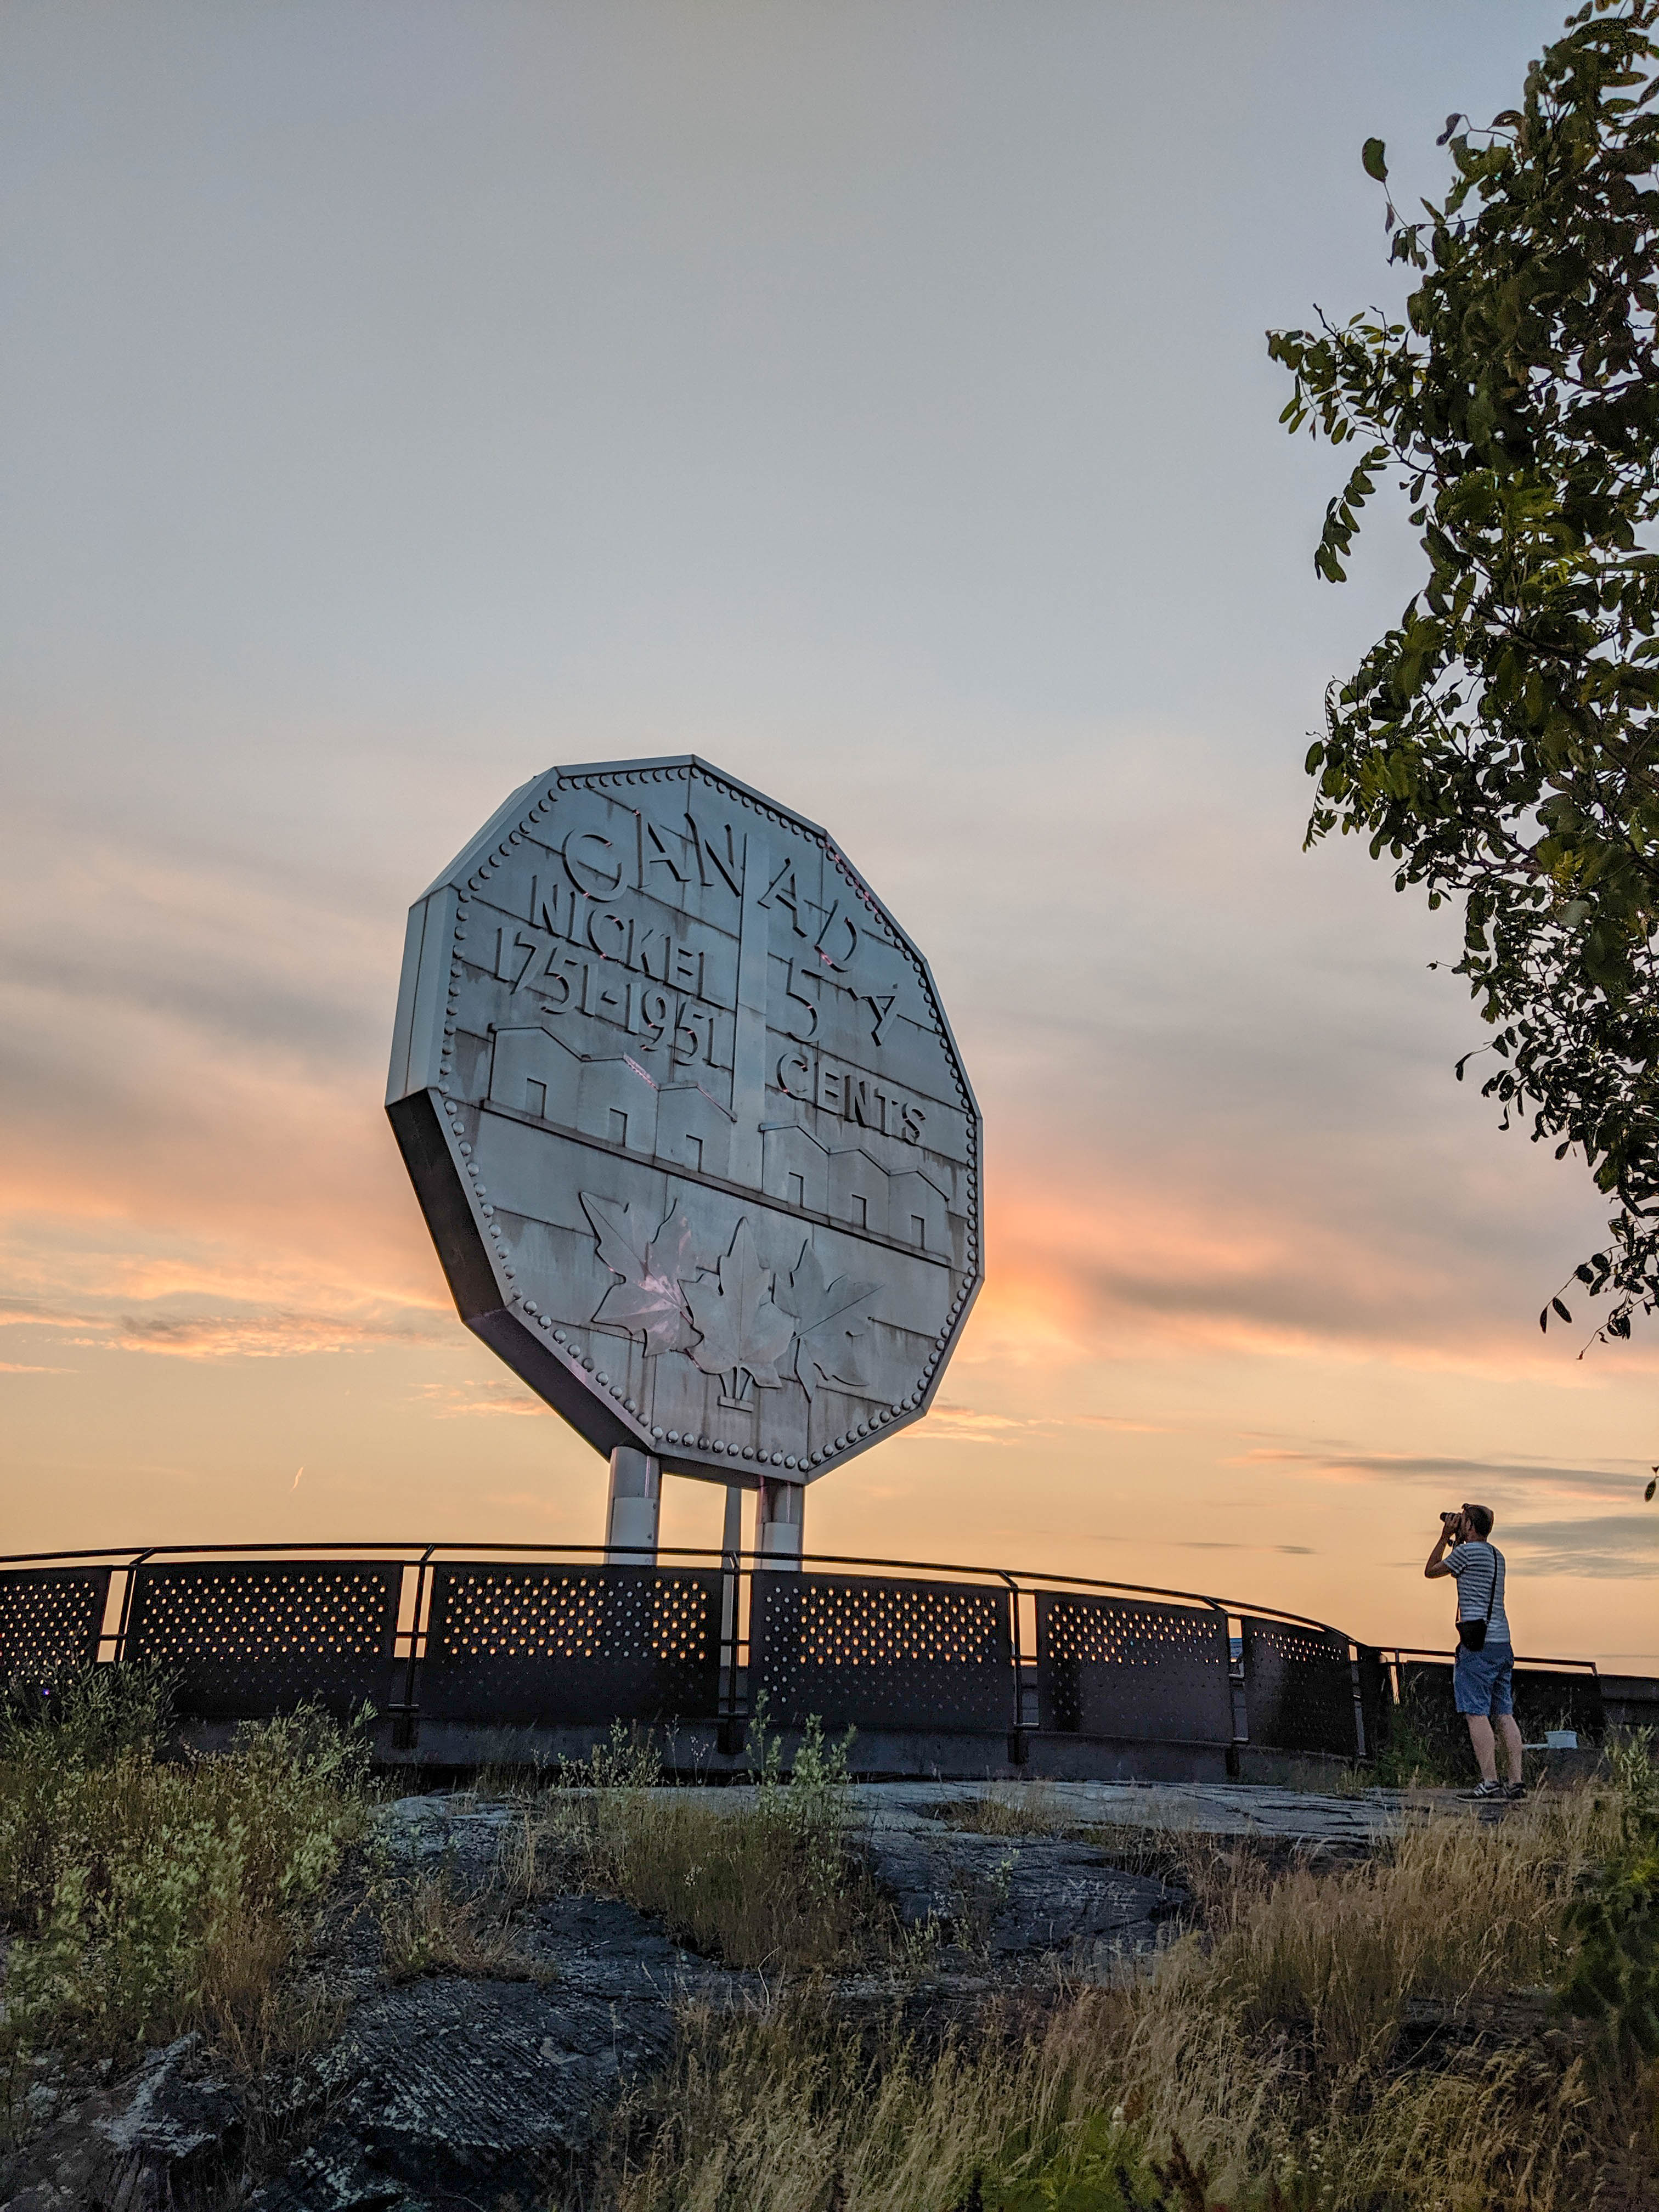 The Big Nickel in Sudbury